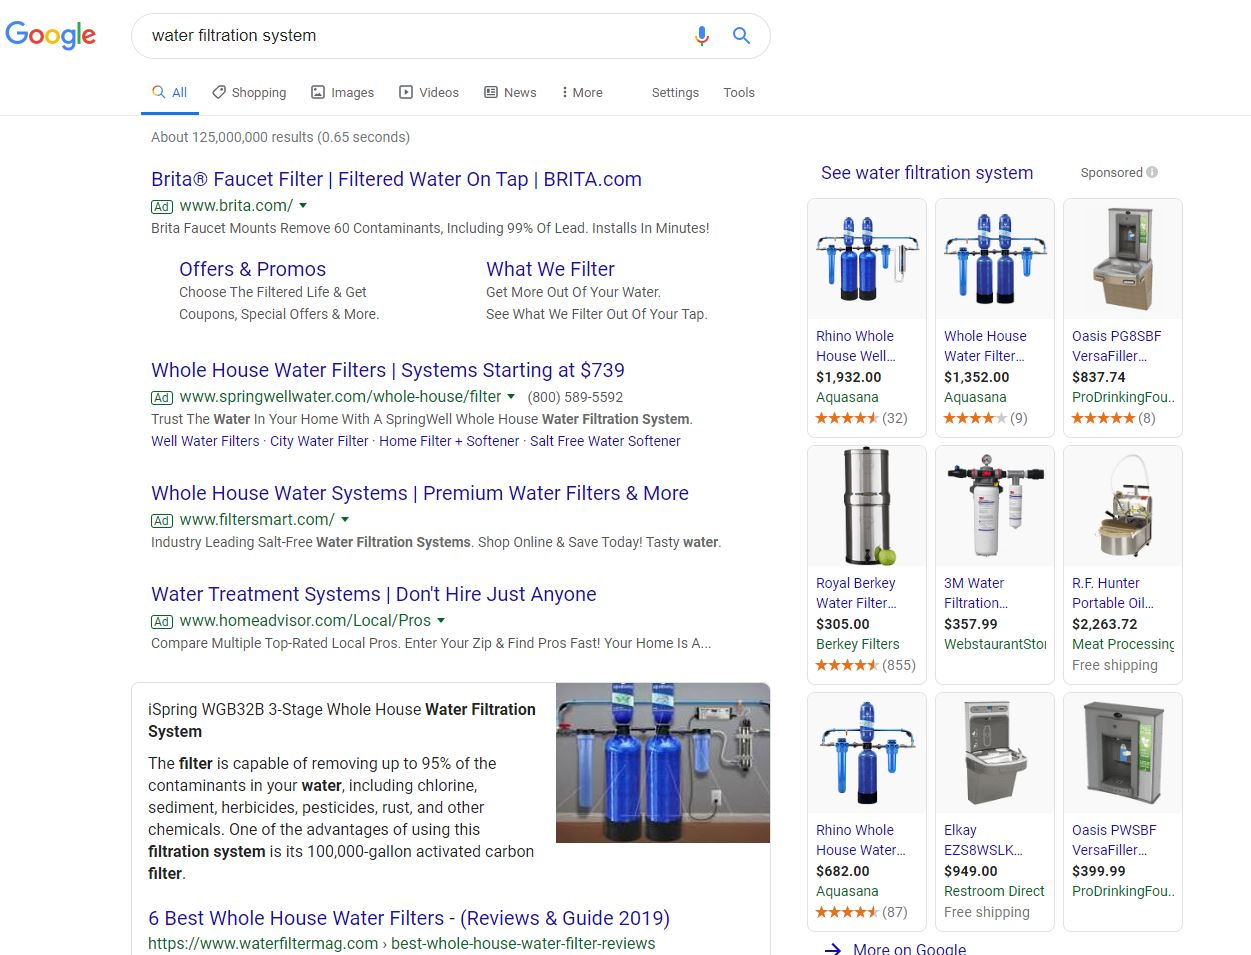 Water Filtration Search Results